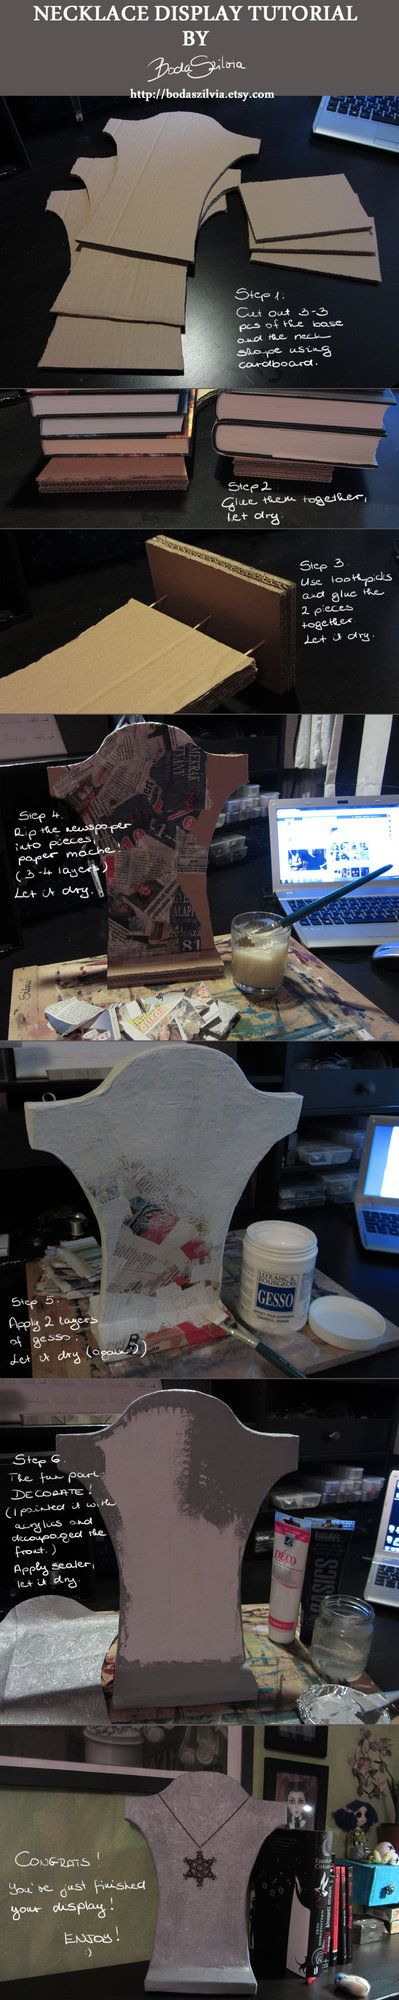 Necklace display tutorial by *bodaszilvia on deviantART (comes with a great homemade glue recipe too)